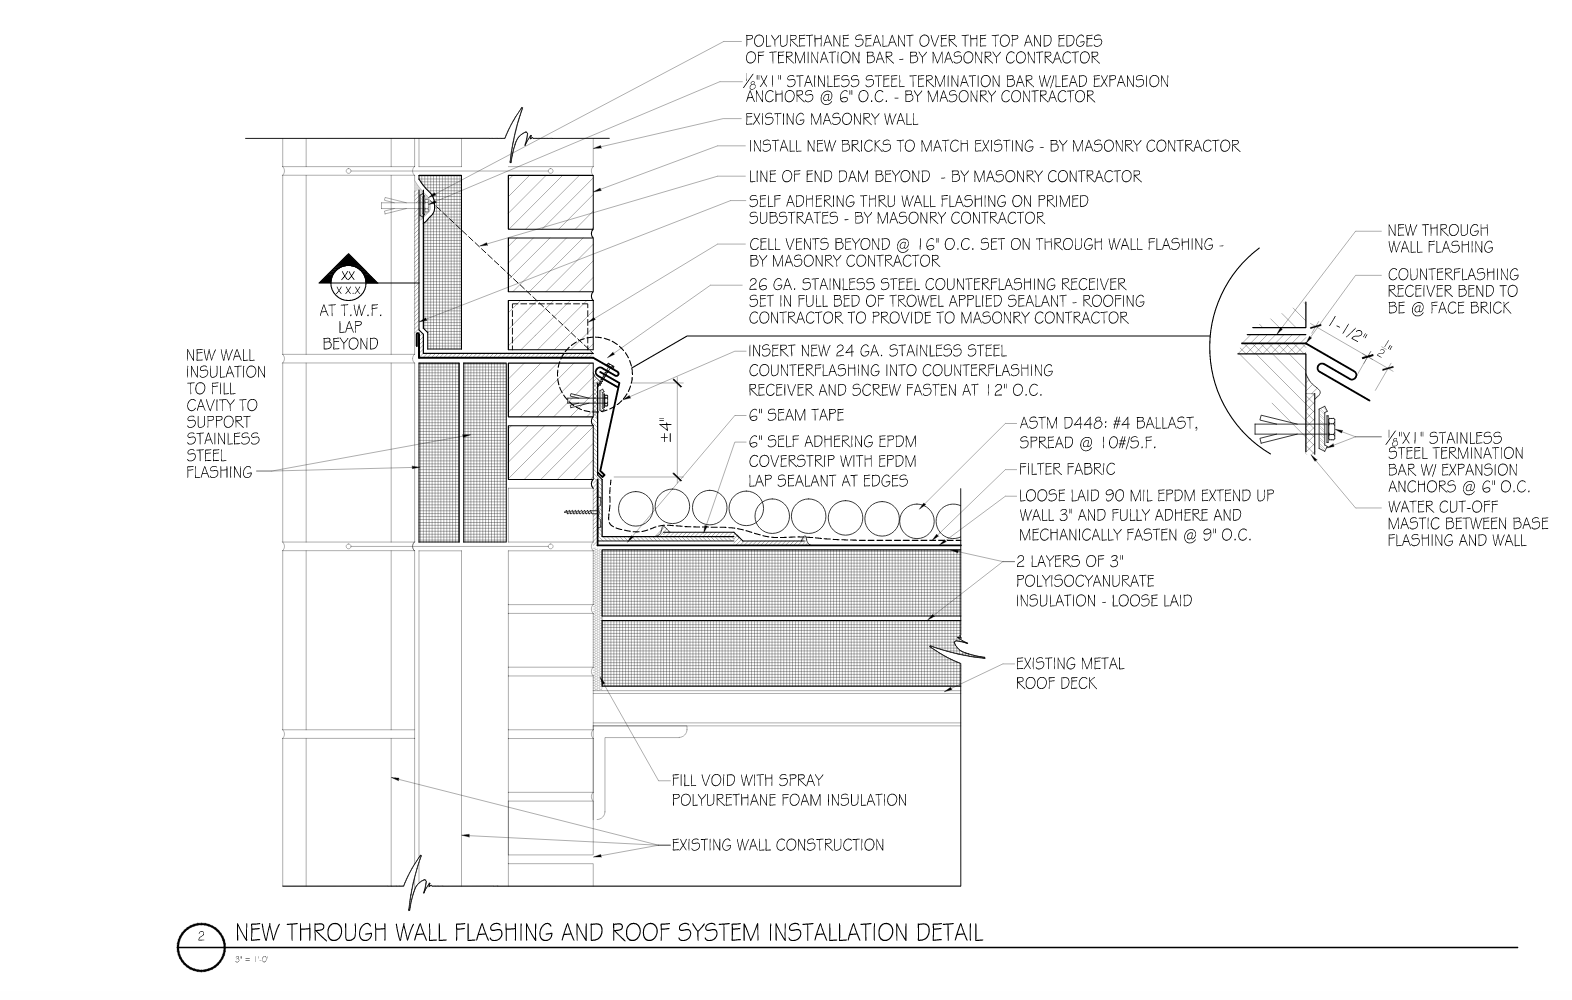 DETAIL 2: Reroofing: A well-thought-out design and detailed raising of the through-wall flashing communicates clearly to the contractor what the design intent is and what is required.